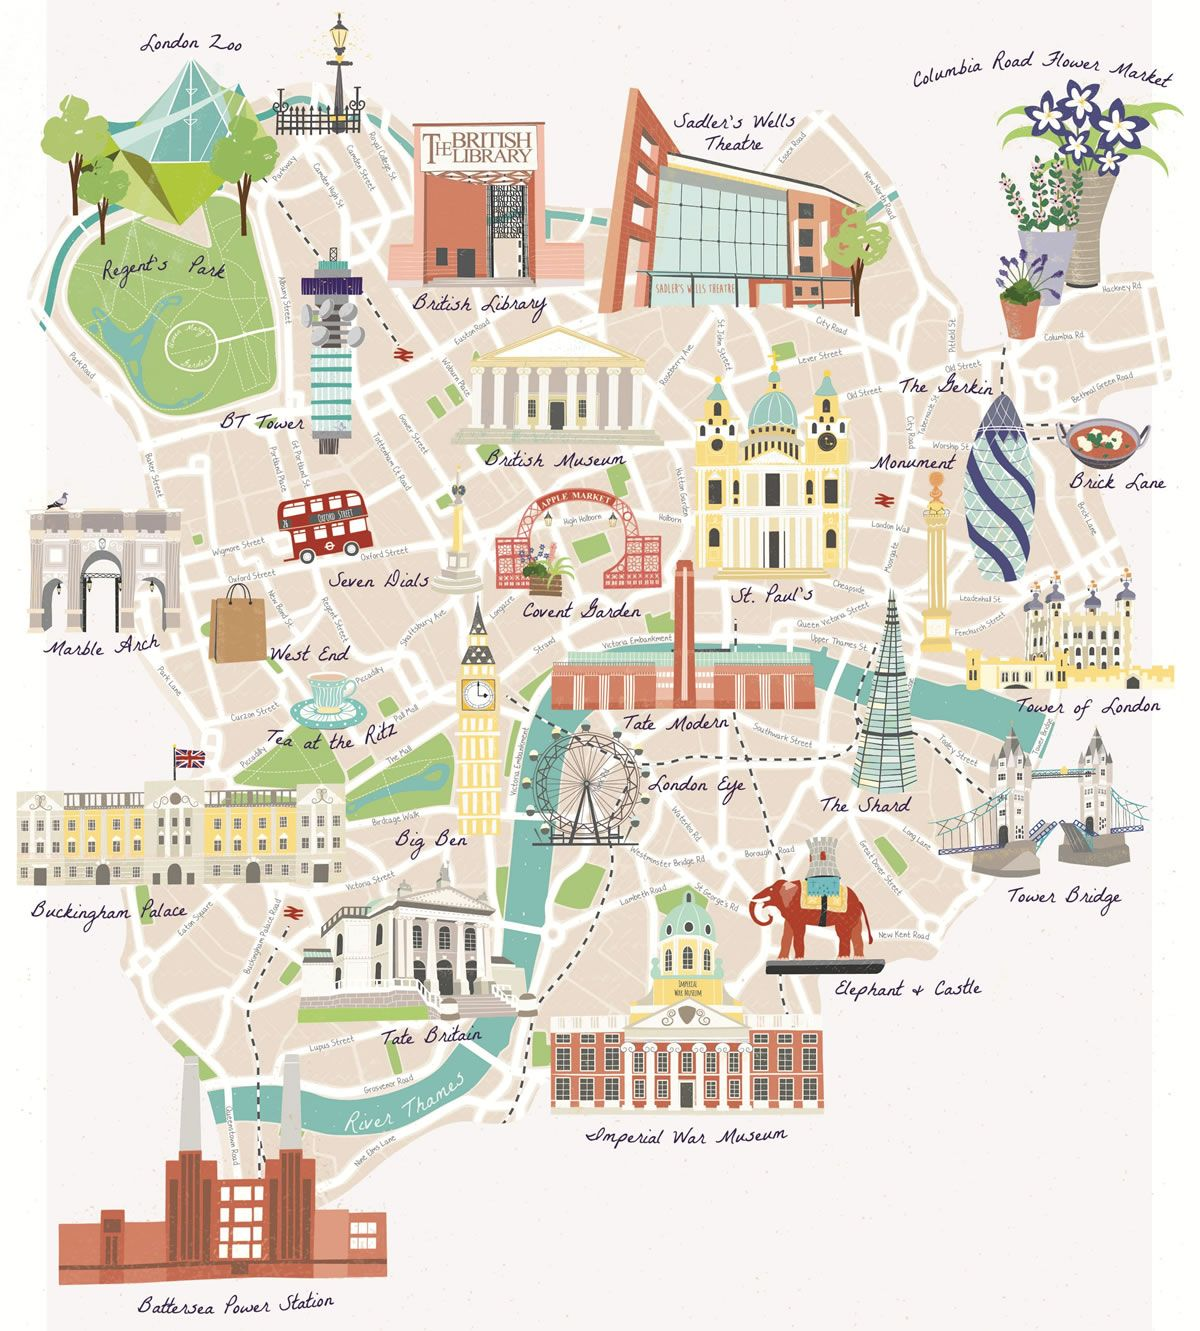 Map Of London With Famous Landmarks.Illustrated Map Of Famous London Landmarks Including